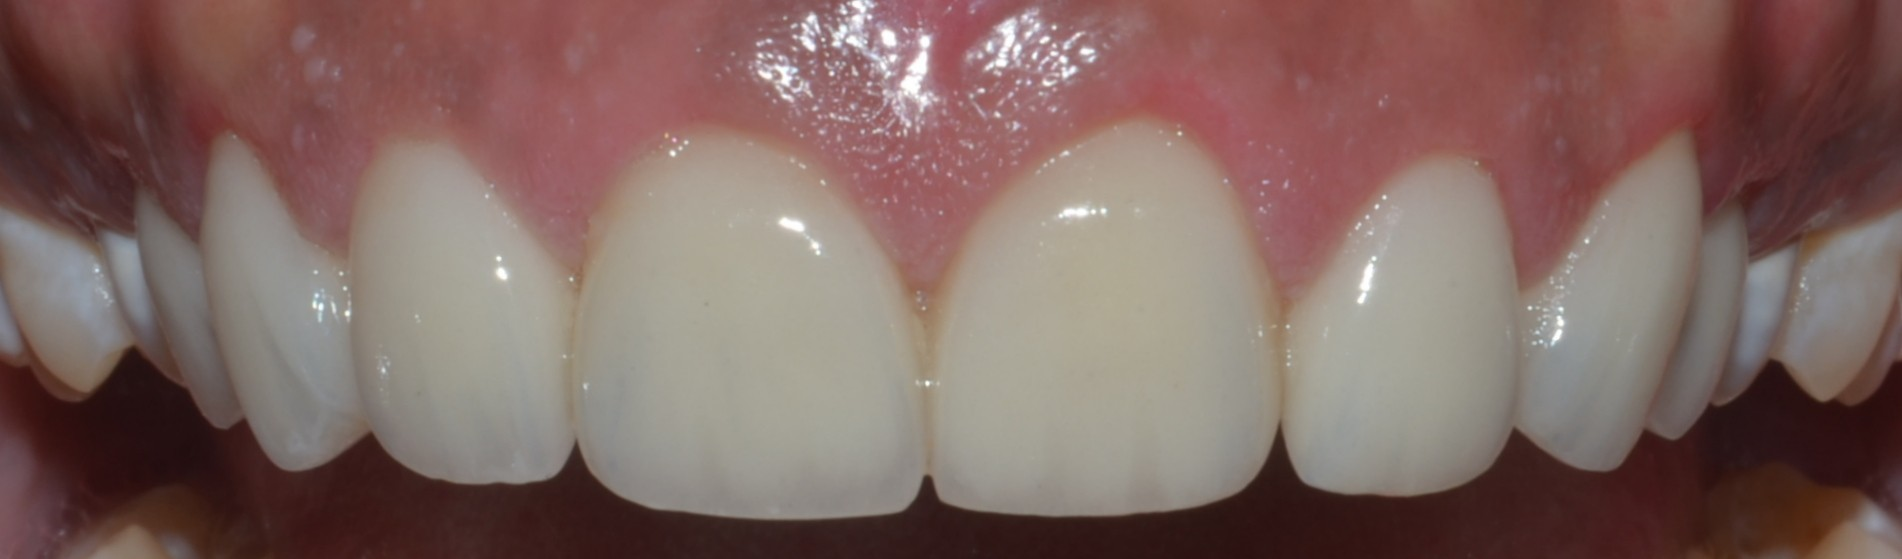 dental crowns for discoloured teeth